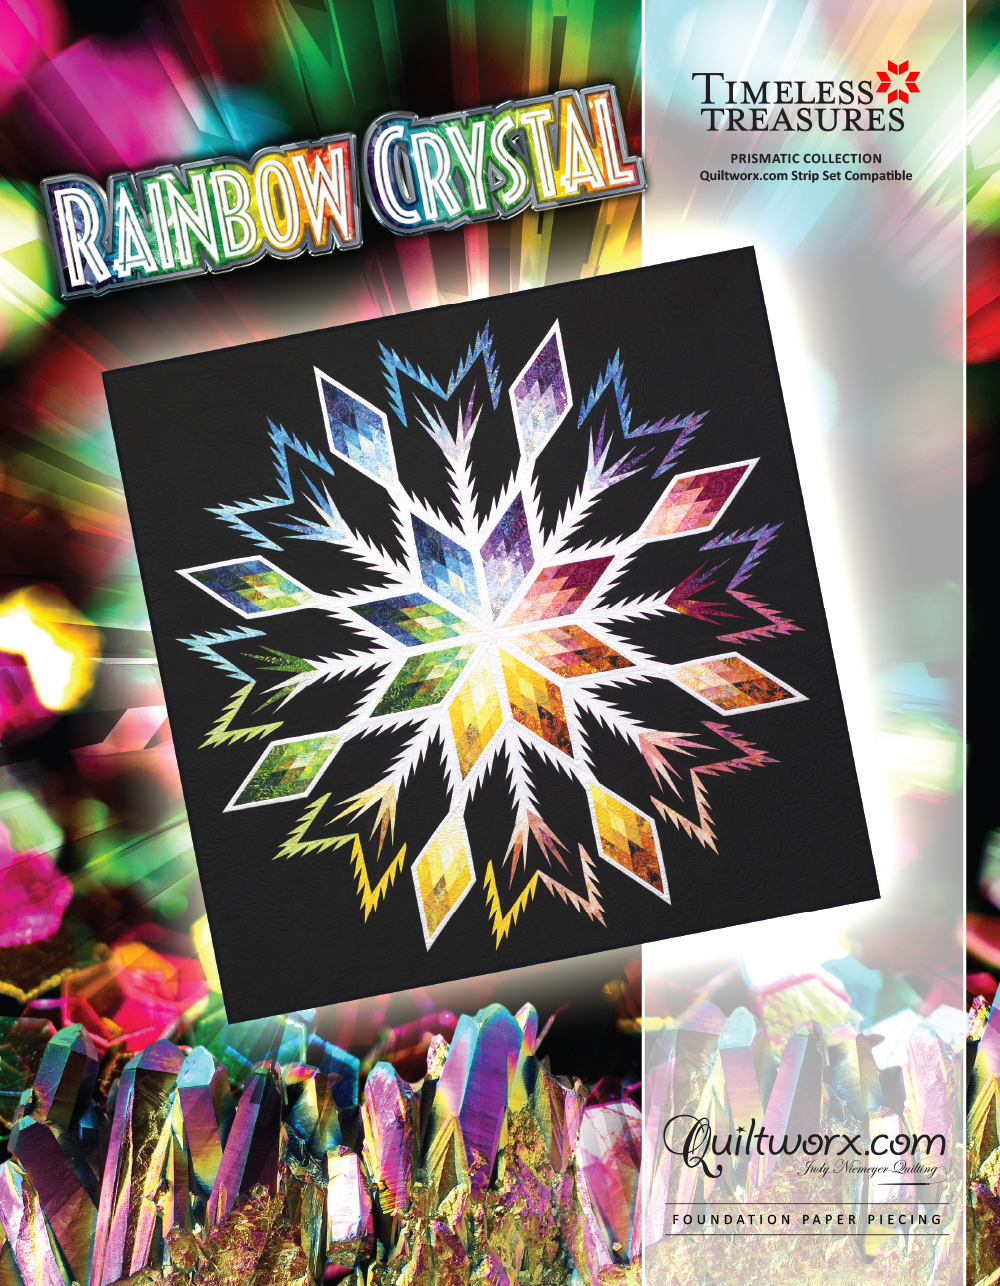 Rainbow-Crystal-Prismatic-CS